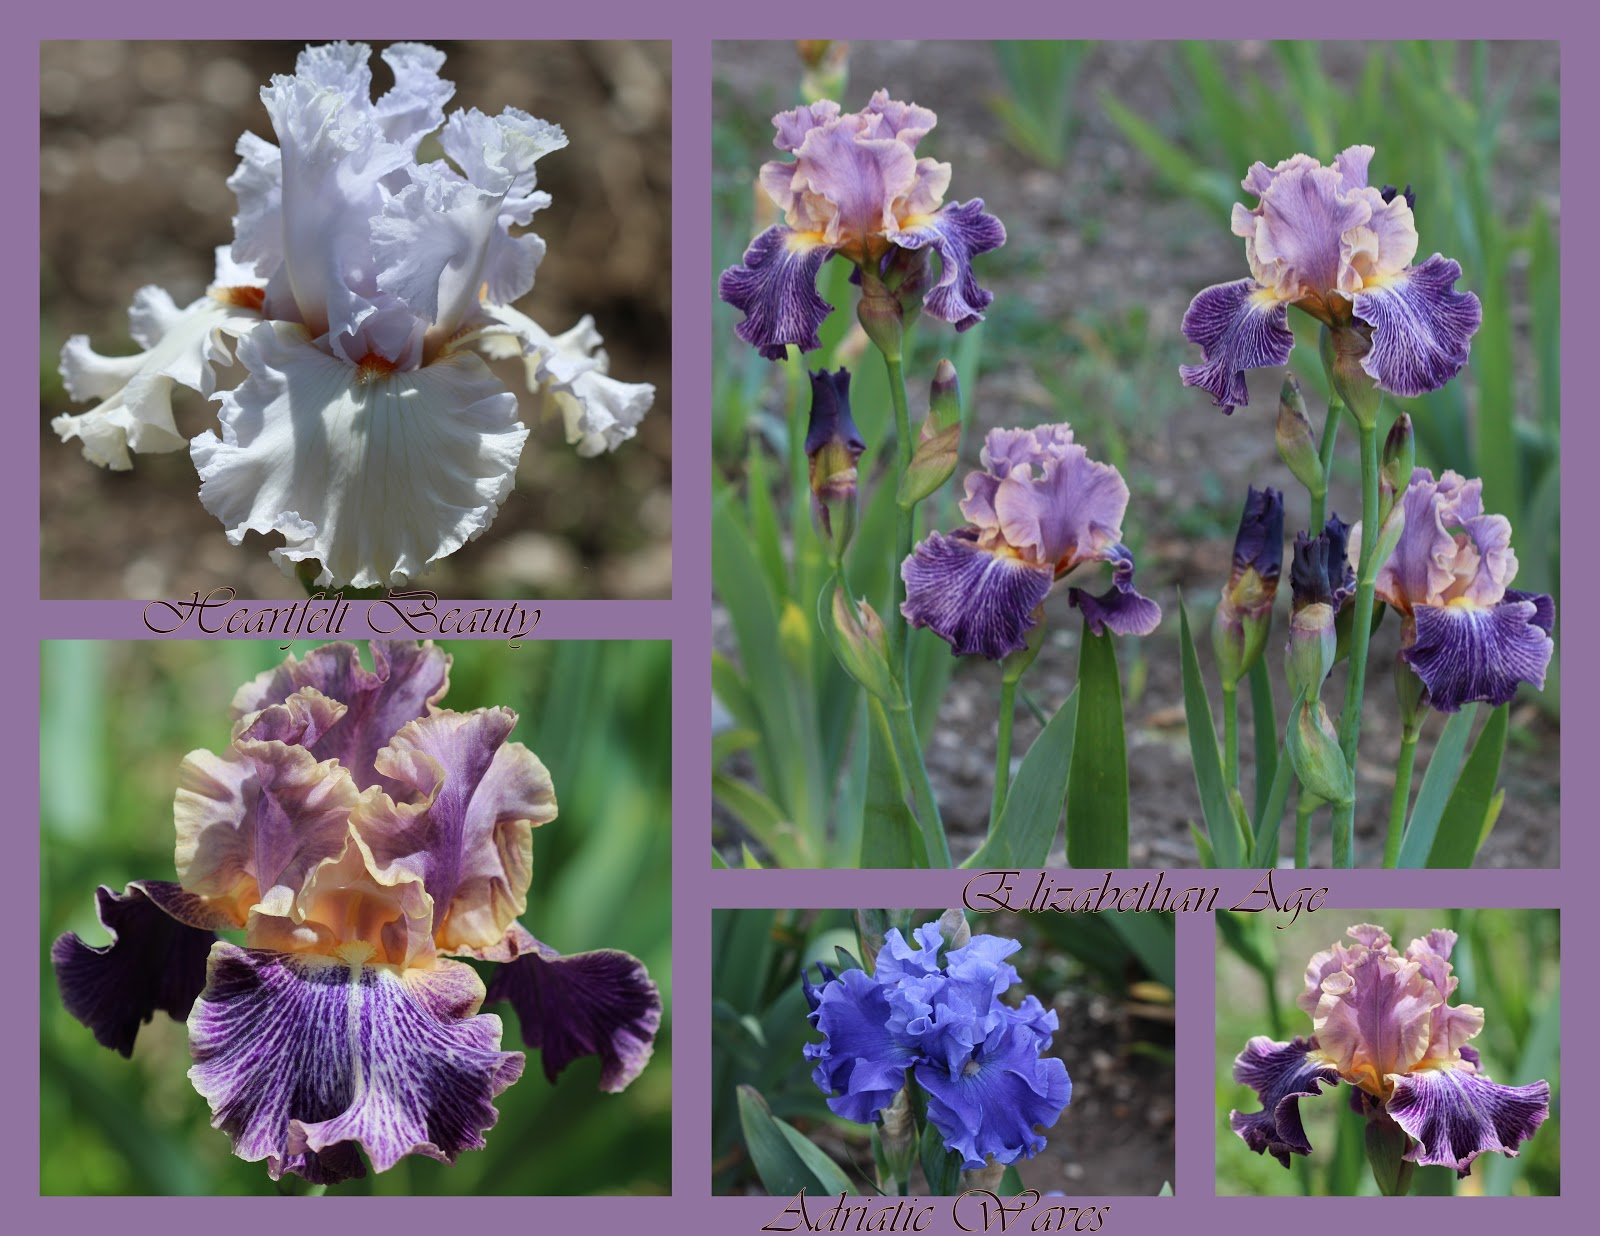 World of irises february 2017 heartfelt beauty margie valenzuela 2012 slight fragrance elizabethan age lowell baumunk 2005 luminata pattern meaning the reverse pattern of a izmirmasajfo Image collections